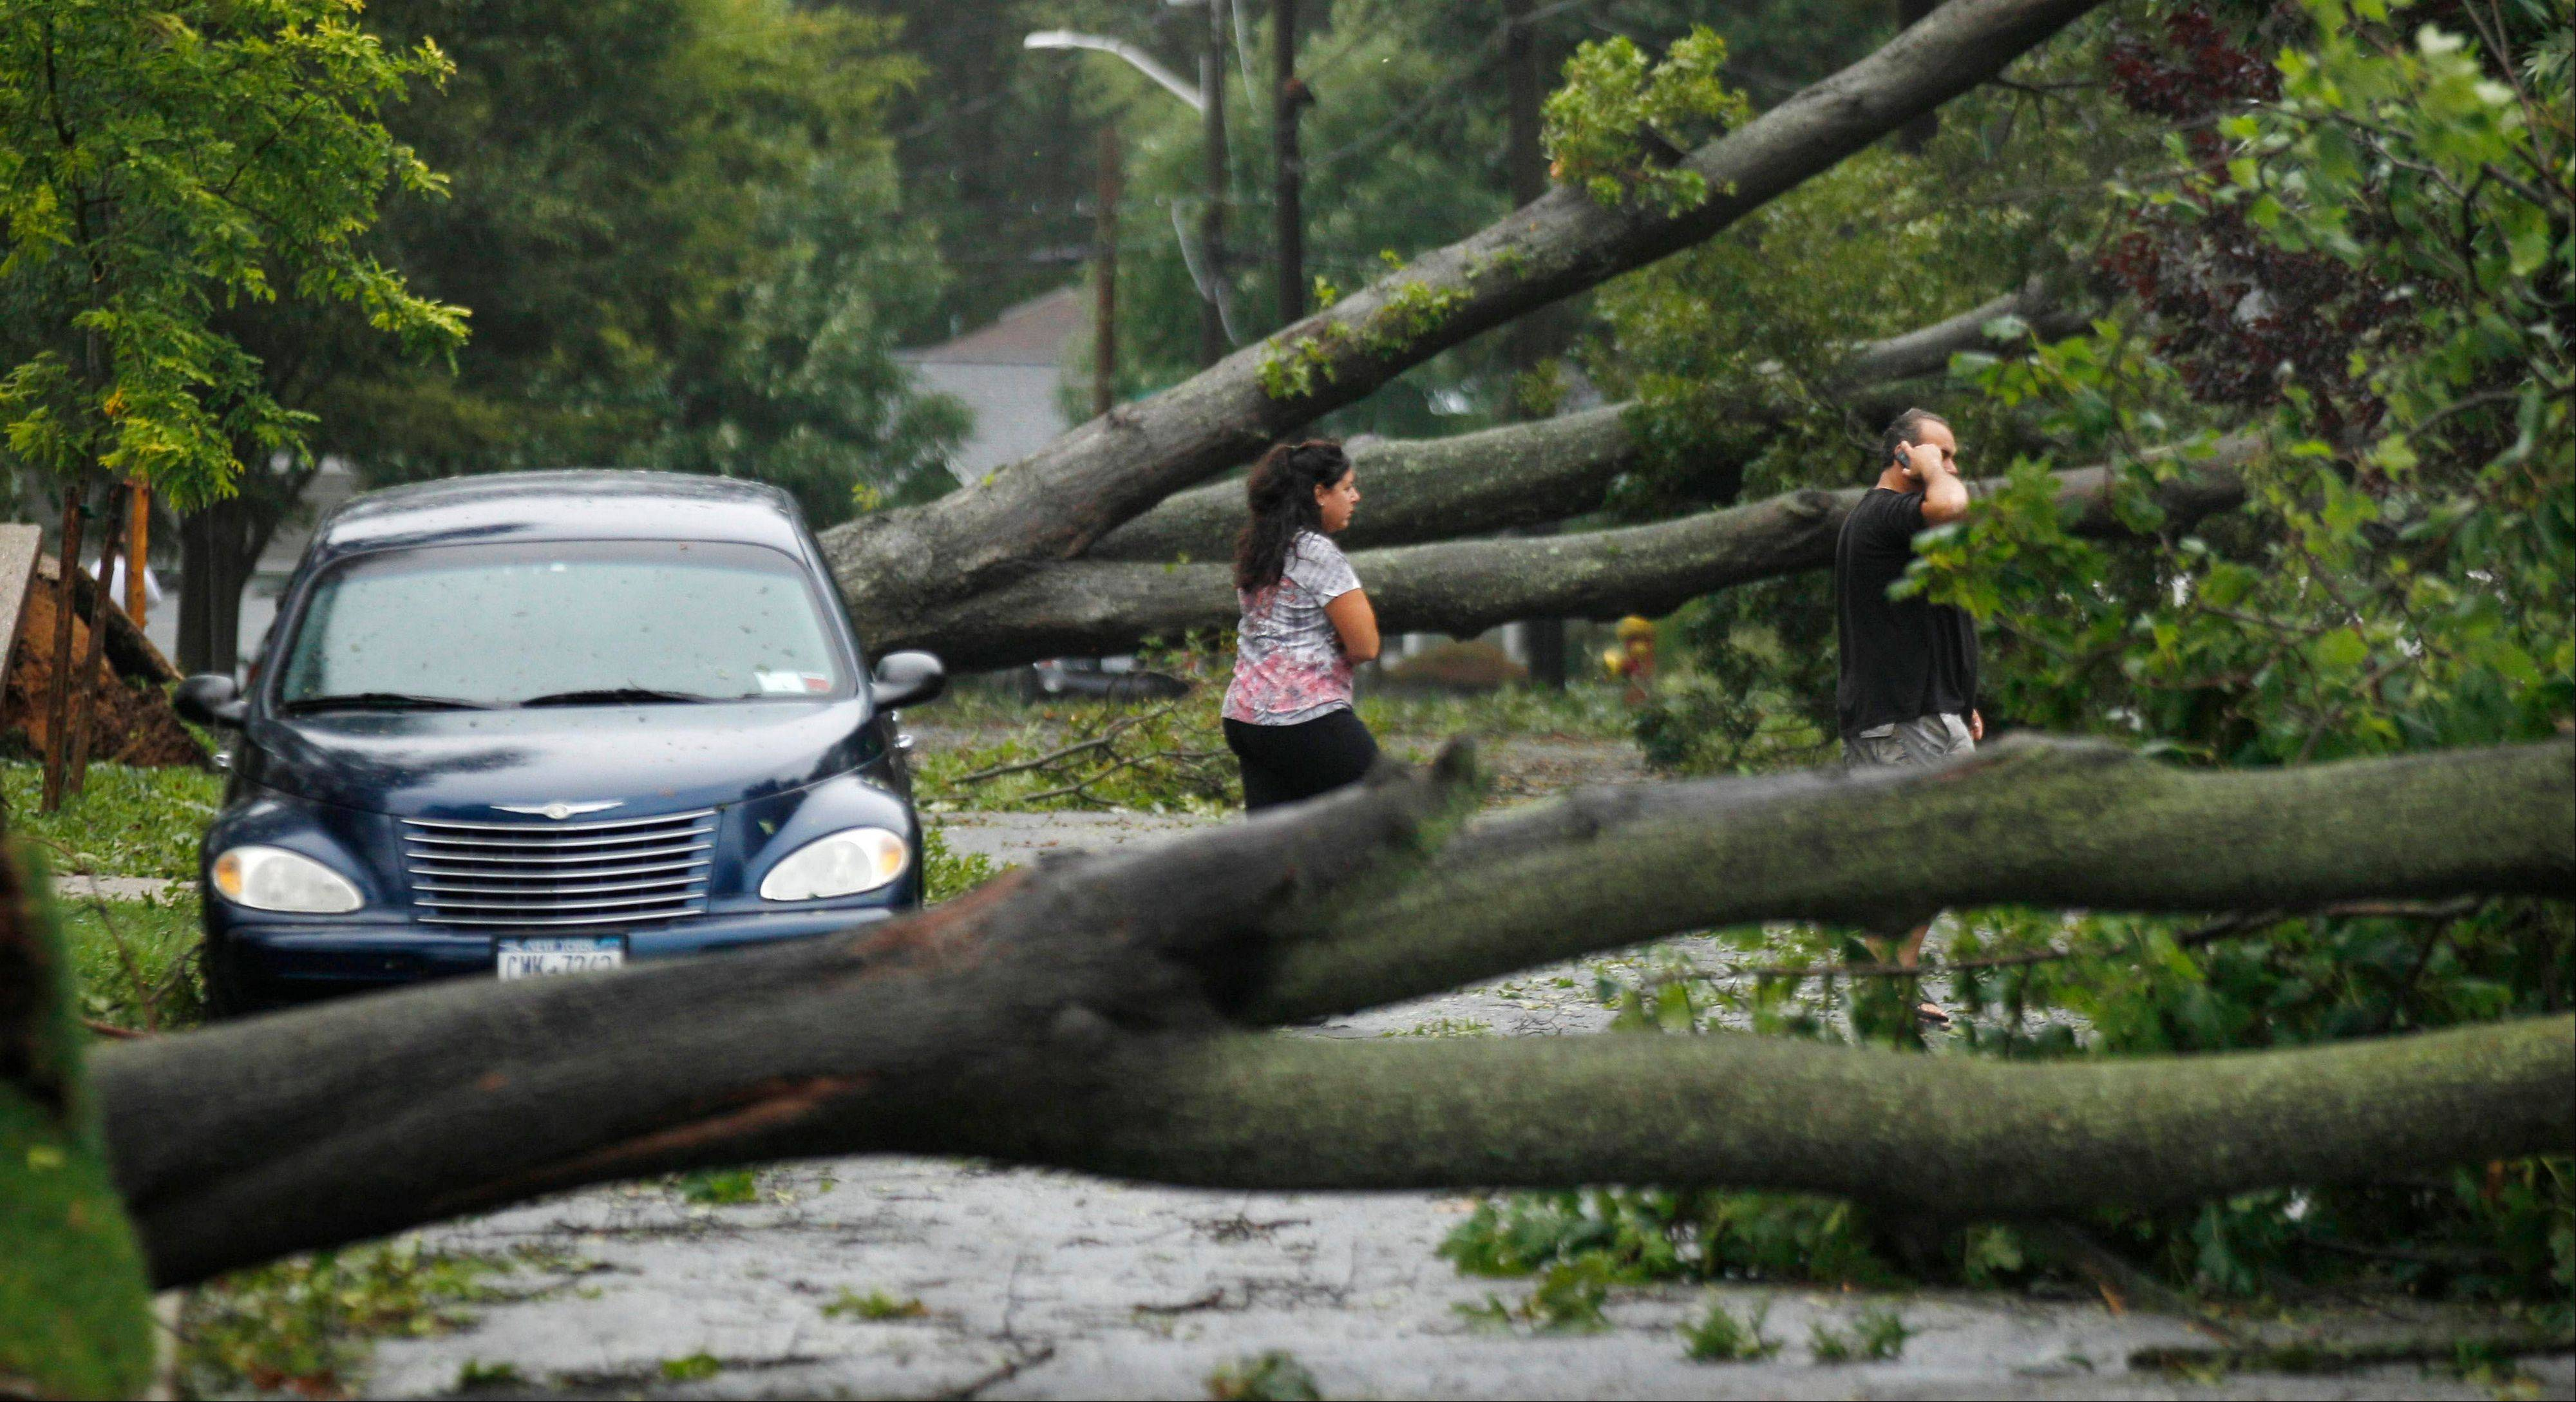 Two residents walk on their road which was not passable after the effects of Hurricane Irene dropped trees in their neighborhood in Massapequa, N.Y., on Long Island, Sunday, Aug. 28, 2011.